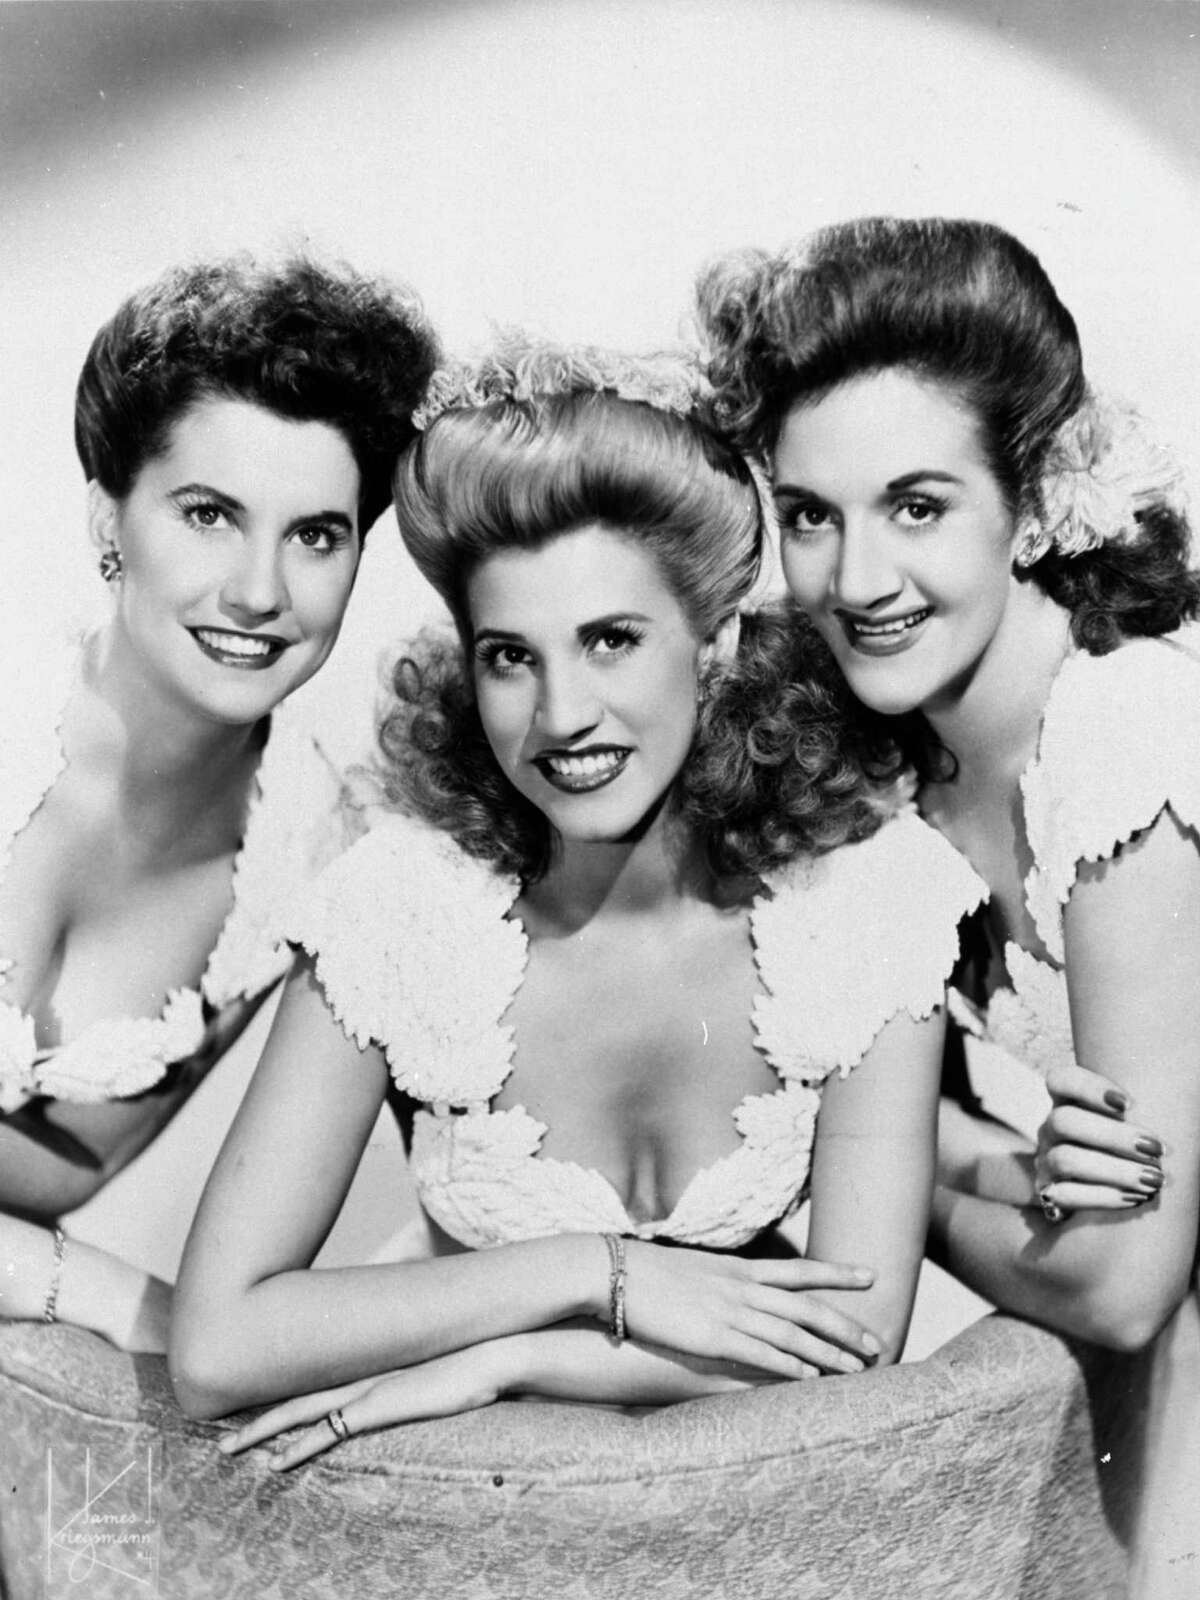 Bing Crosby and the Andrews Sisters were topping the Billboard charts with